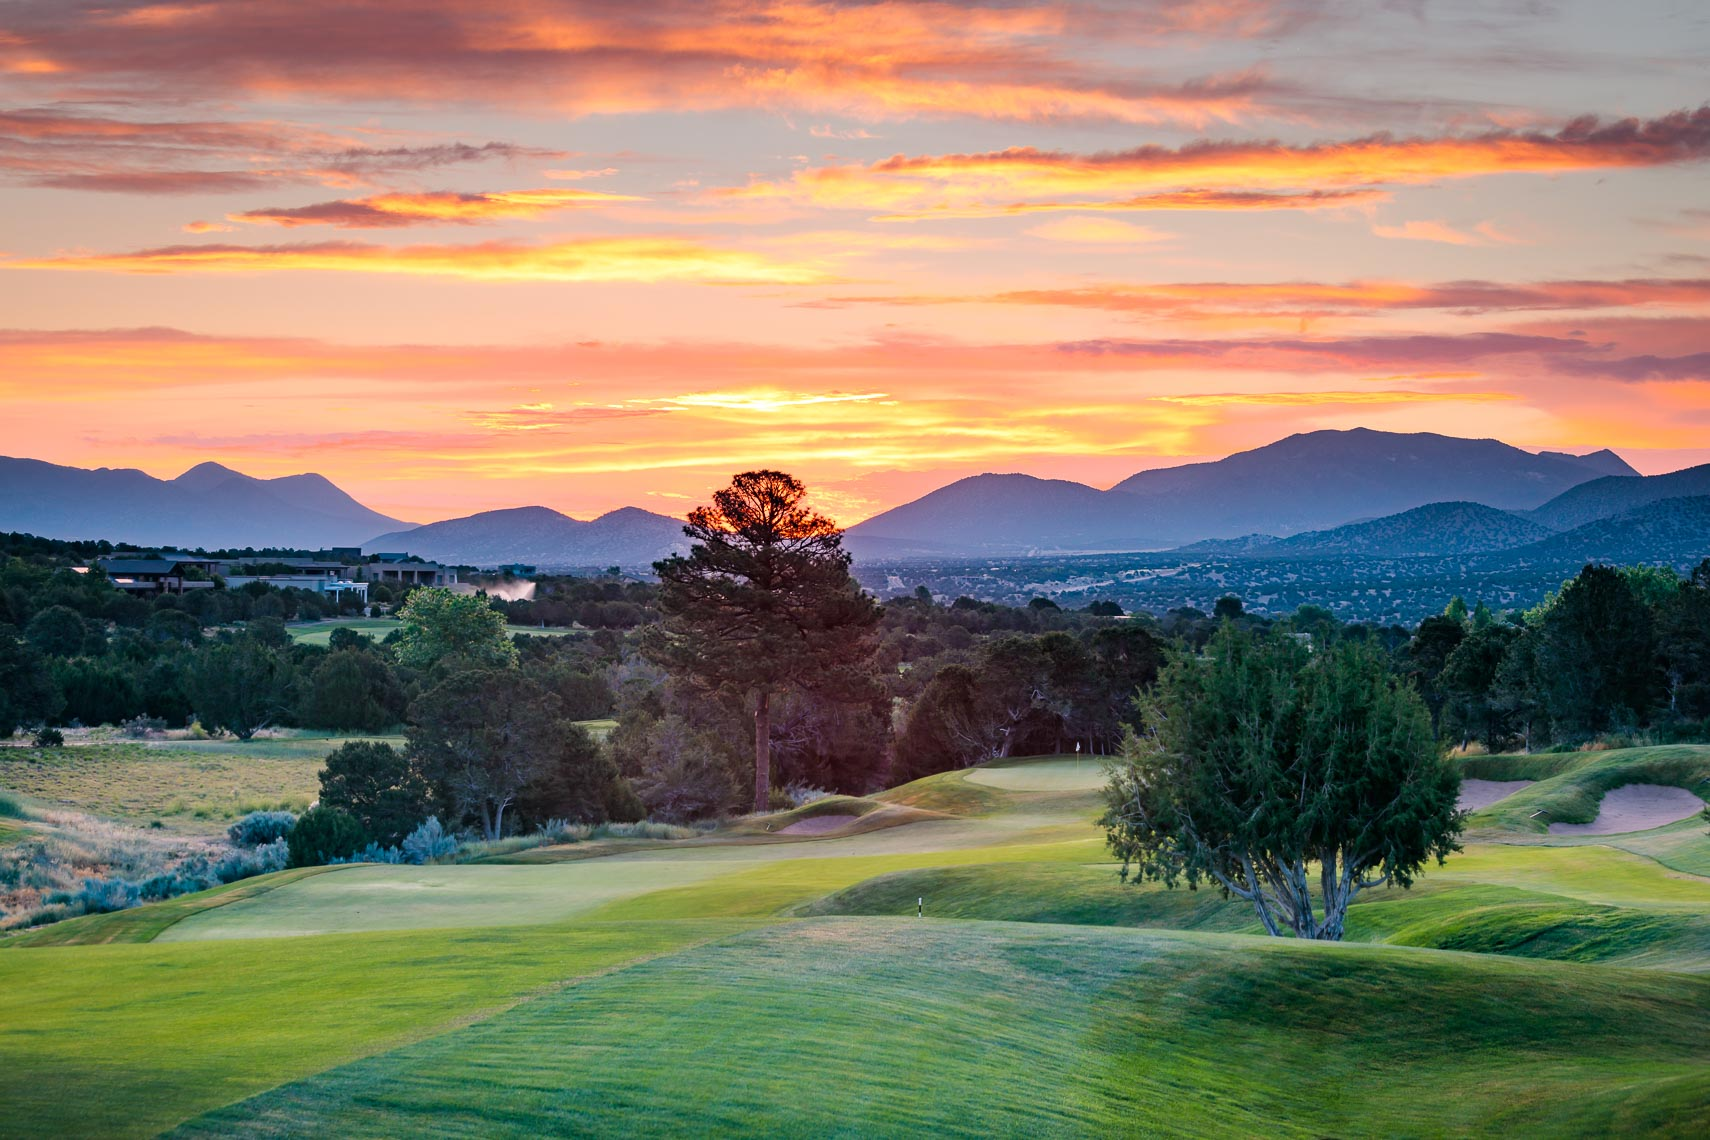 New Mexico Golf Course Paako Ridge Greens | Michael DeYoung